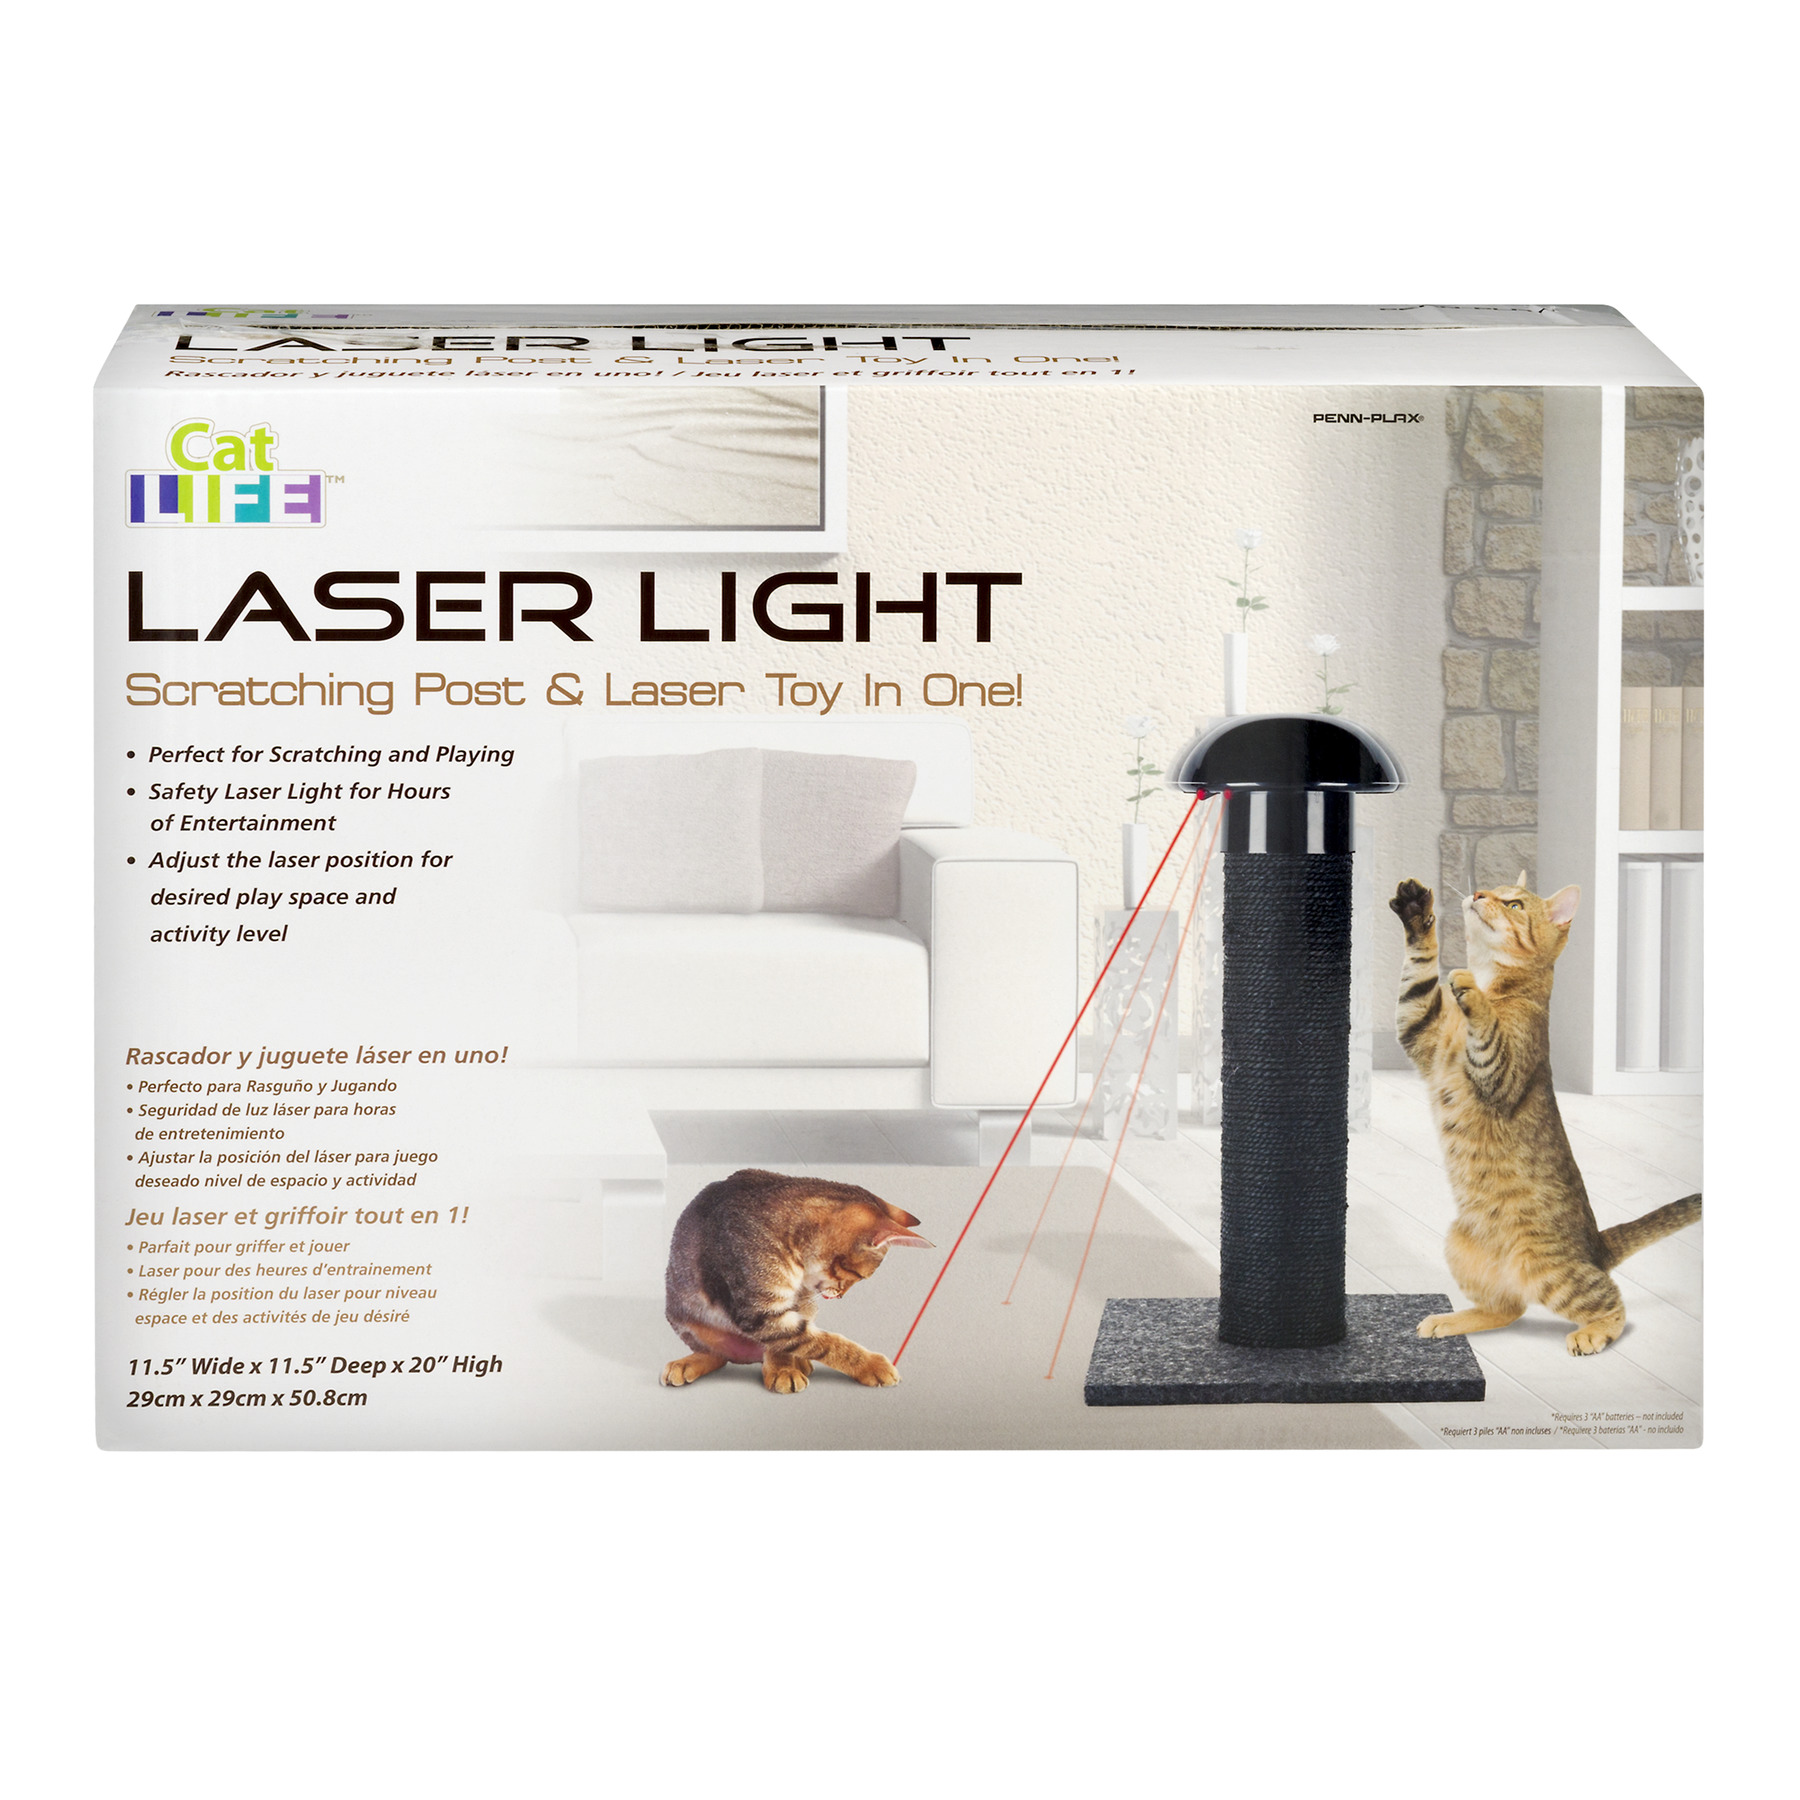 Penn-Plax Cat Life Laser Light Scratching Post & Laser Toy, 1.0 CT